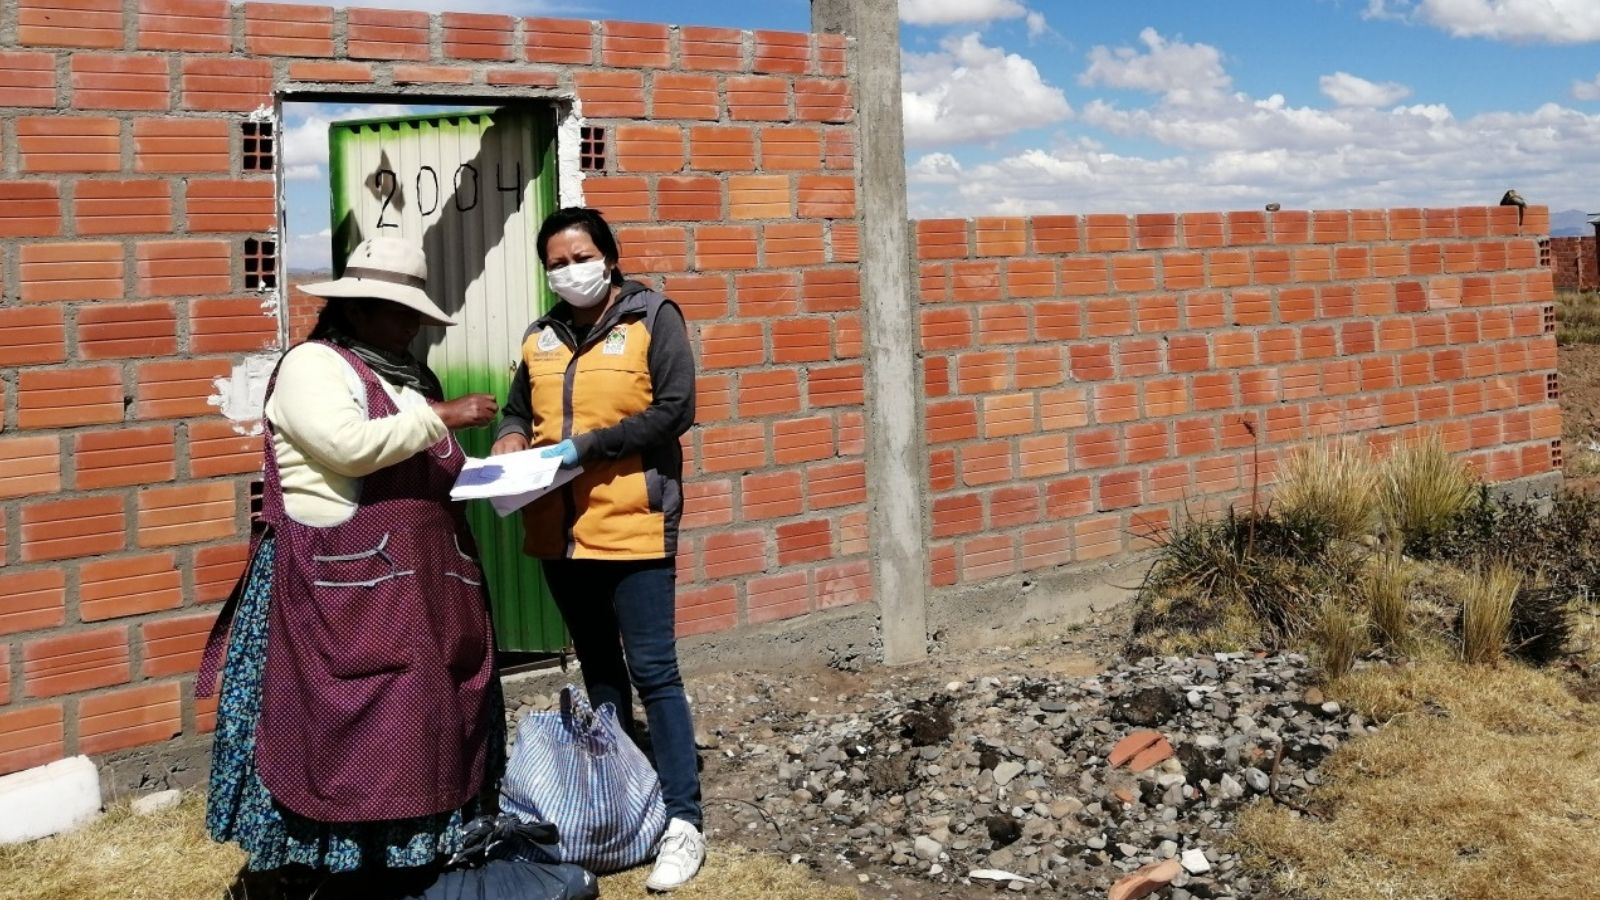 A masked worker distributes food in Bolivia.